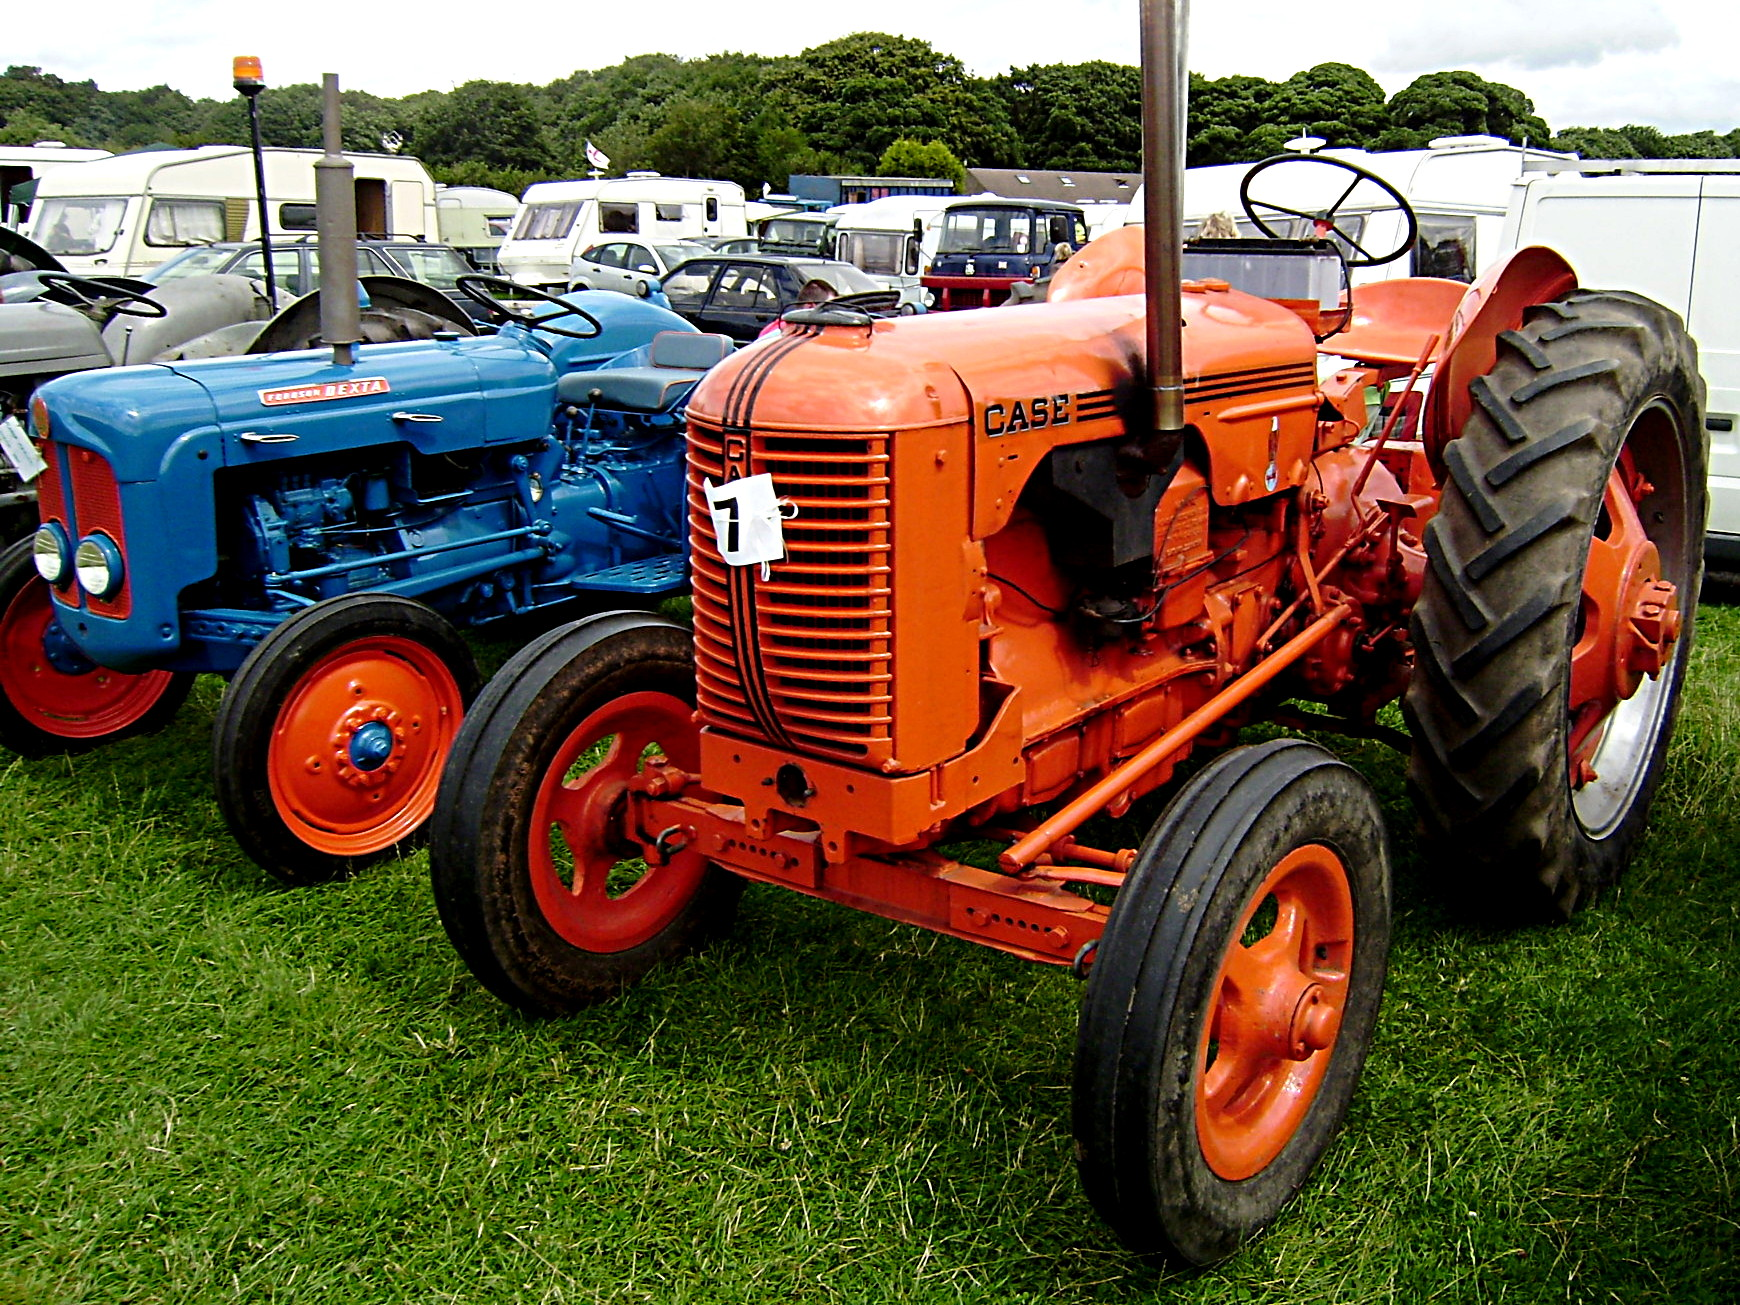 A Case tractor (right) and a Fordson Dexta tractor (left) at Cromford Steam Rally 2008, Derbyshire, England. Via Wikipedia.